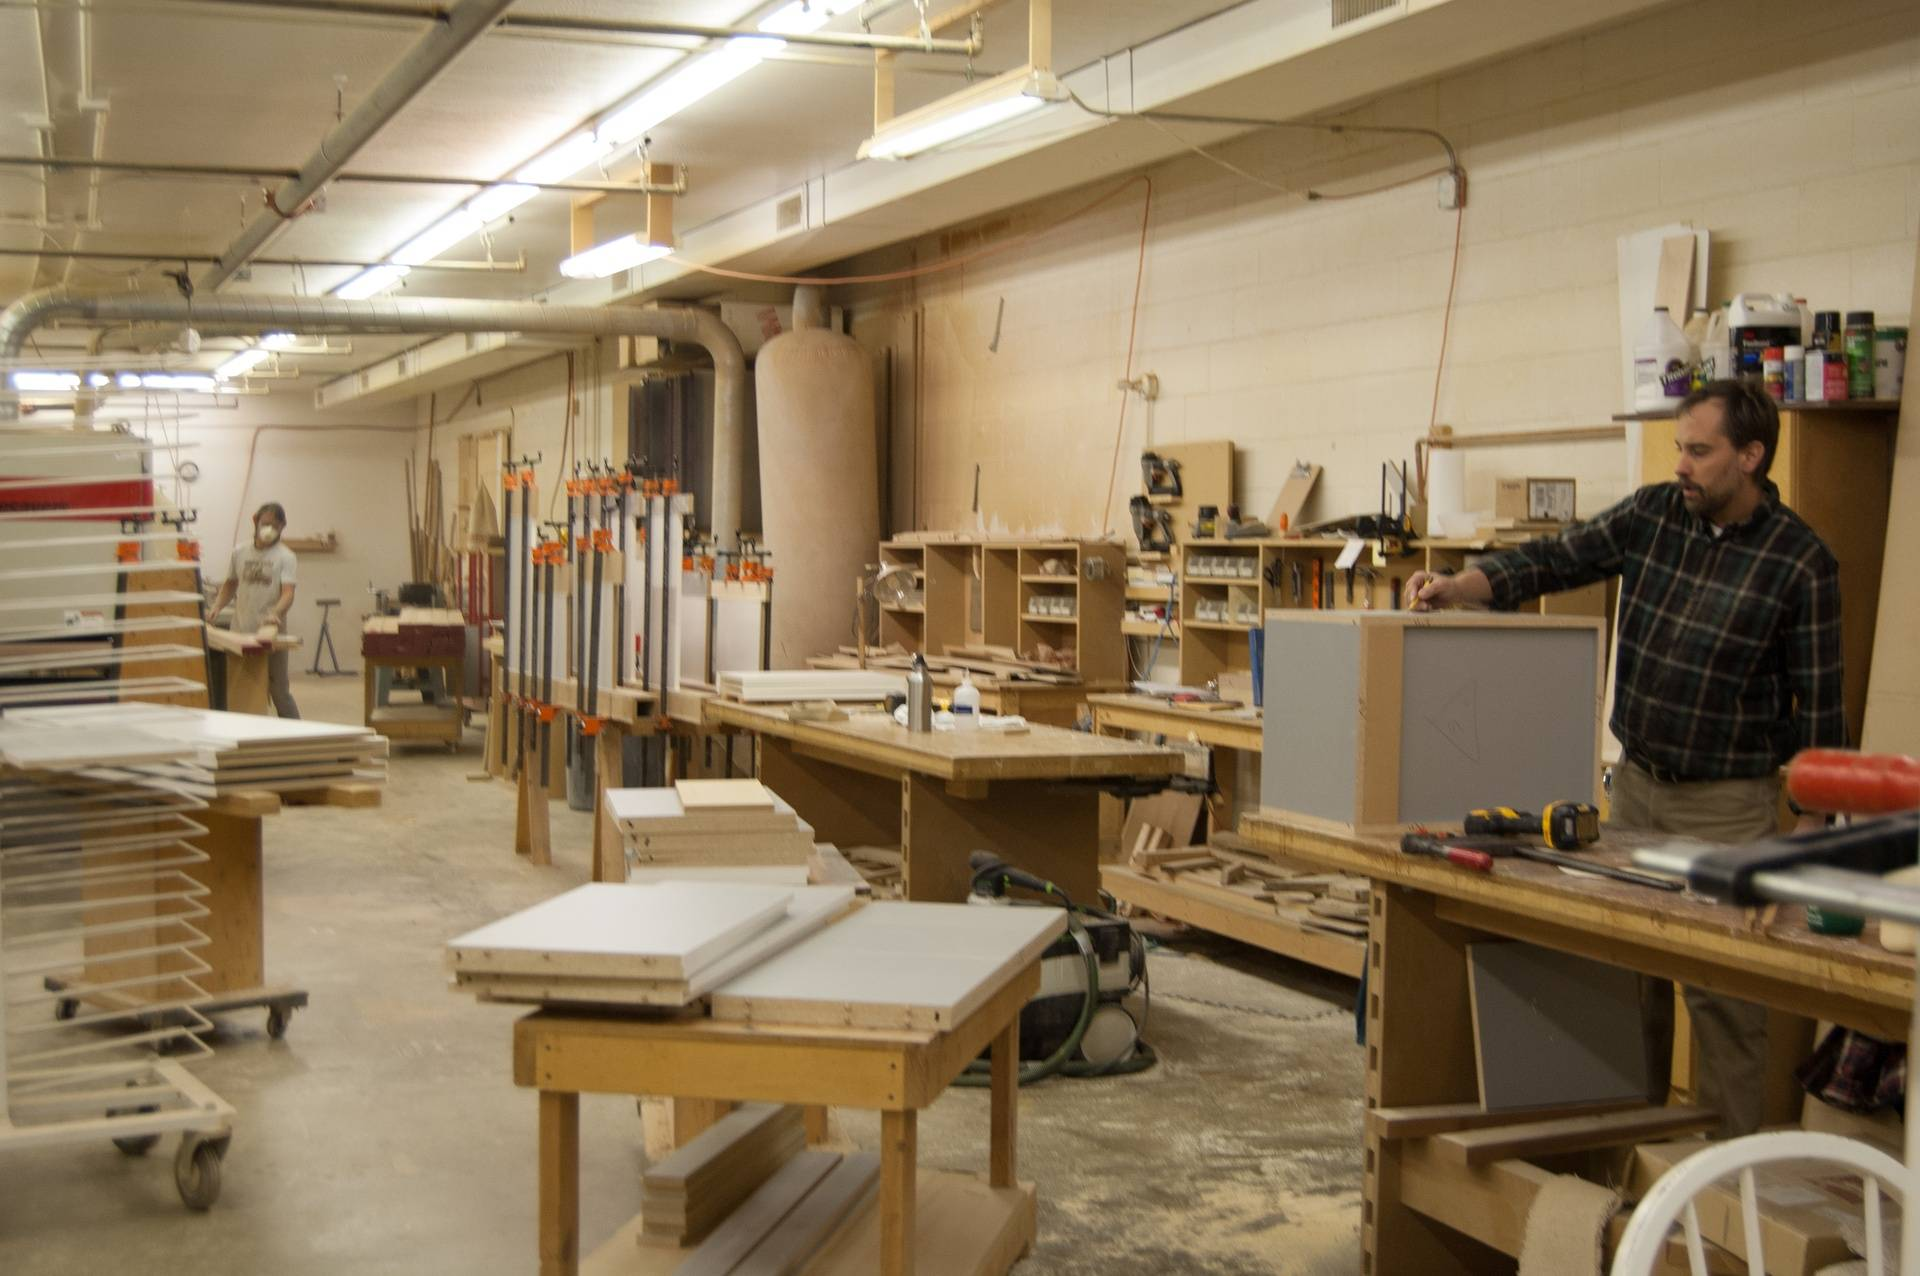 Michael Brotherton Woodwork & Design, 12 Mill Street, Jamestown, Colorado, 80455